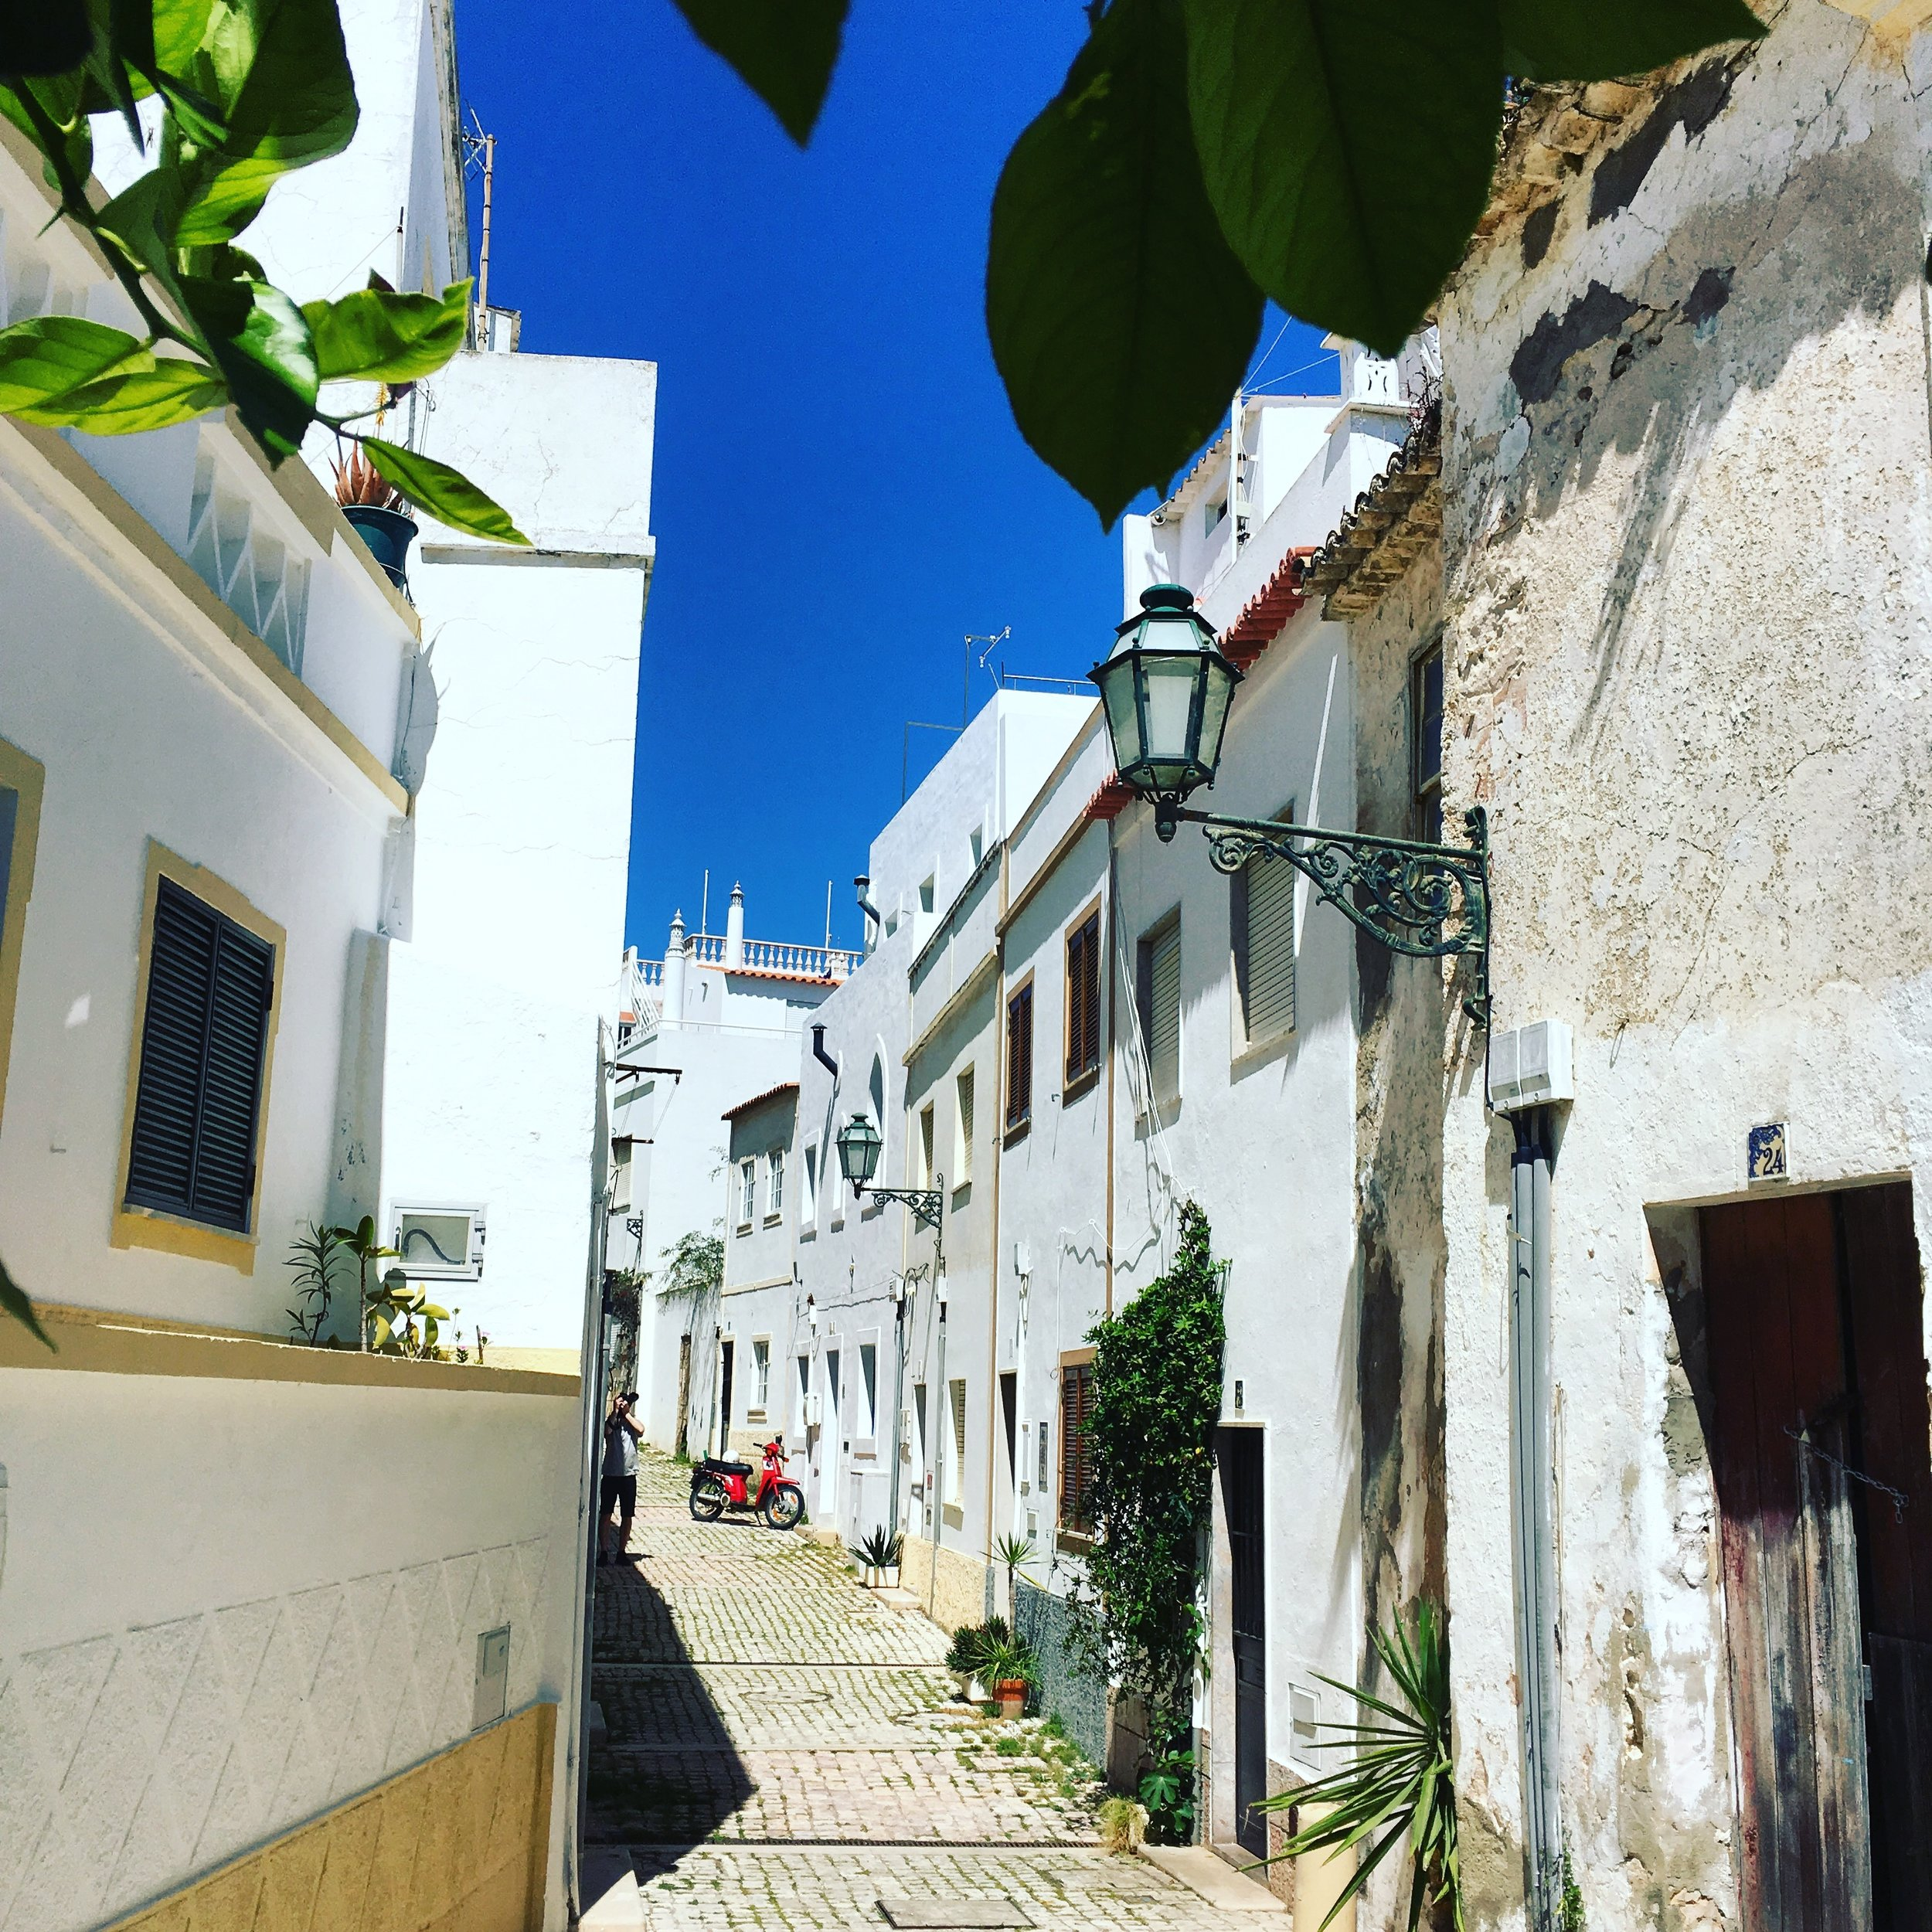 lagos-what to do it lagos- portugal- what to do in portugal - algarve - what to do it algarve-albufeira